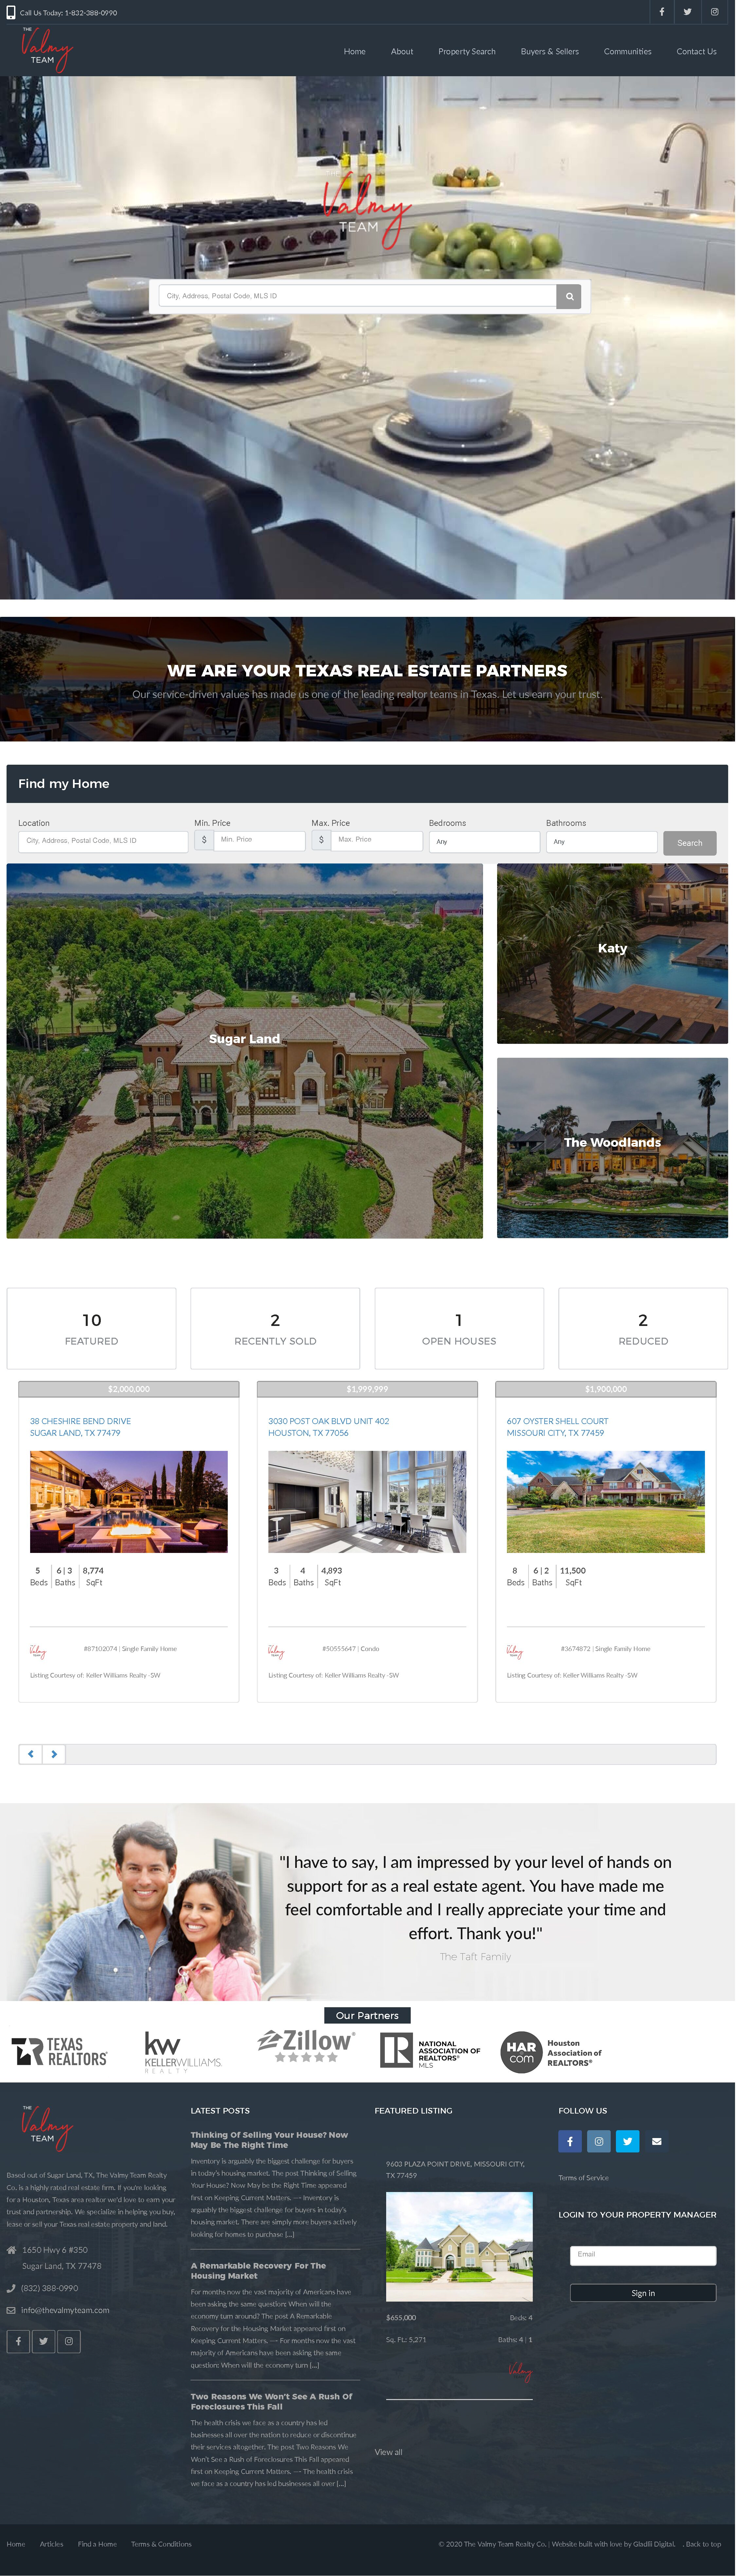 Website Design for Realtor with IDX MLS